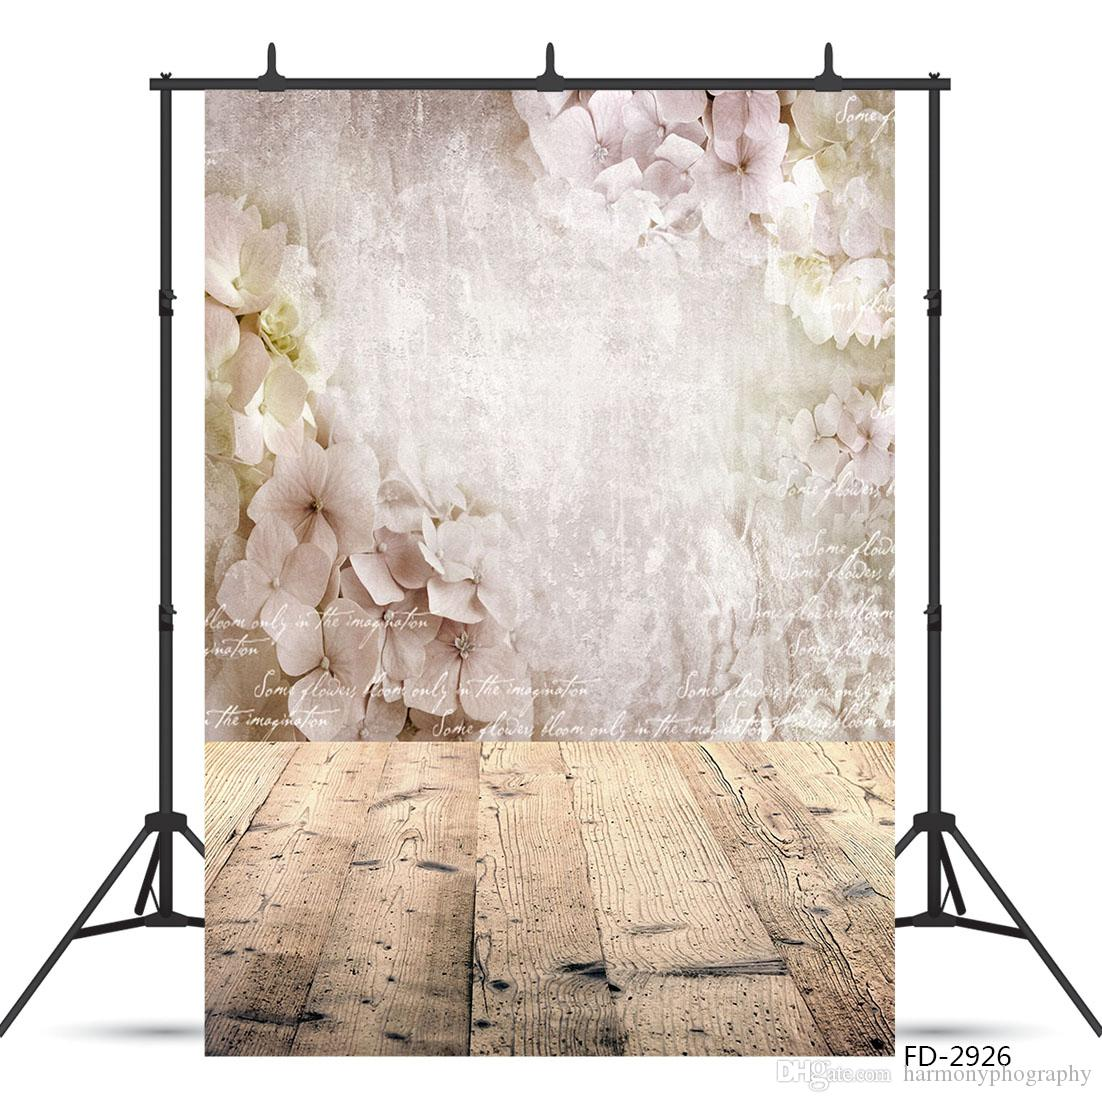 Flower Wooden Floor Photography Backdrops Computer Printed Photoshoot Background for Children Baby Lovers Portrait Pography Props Photoshoot